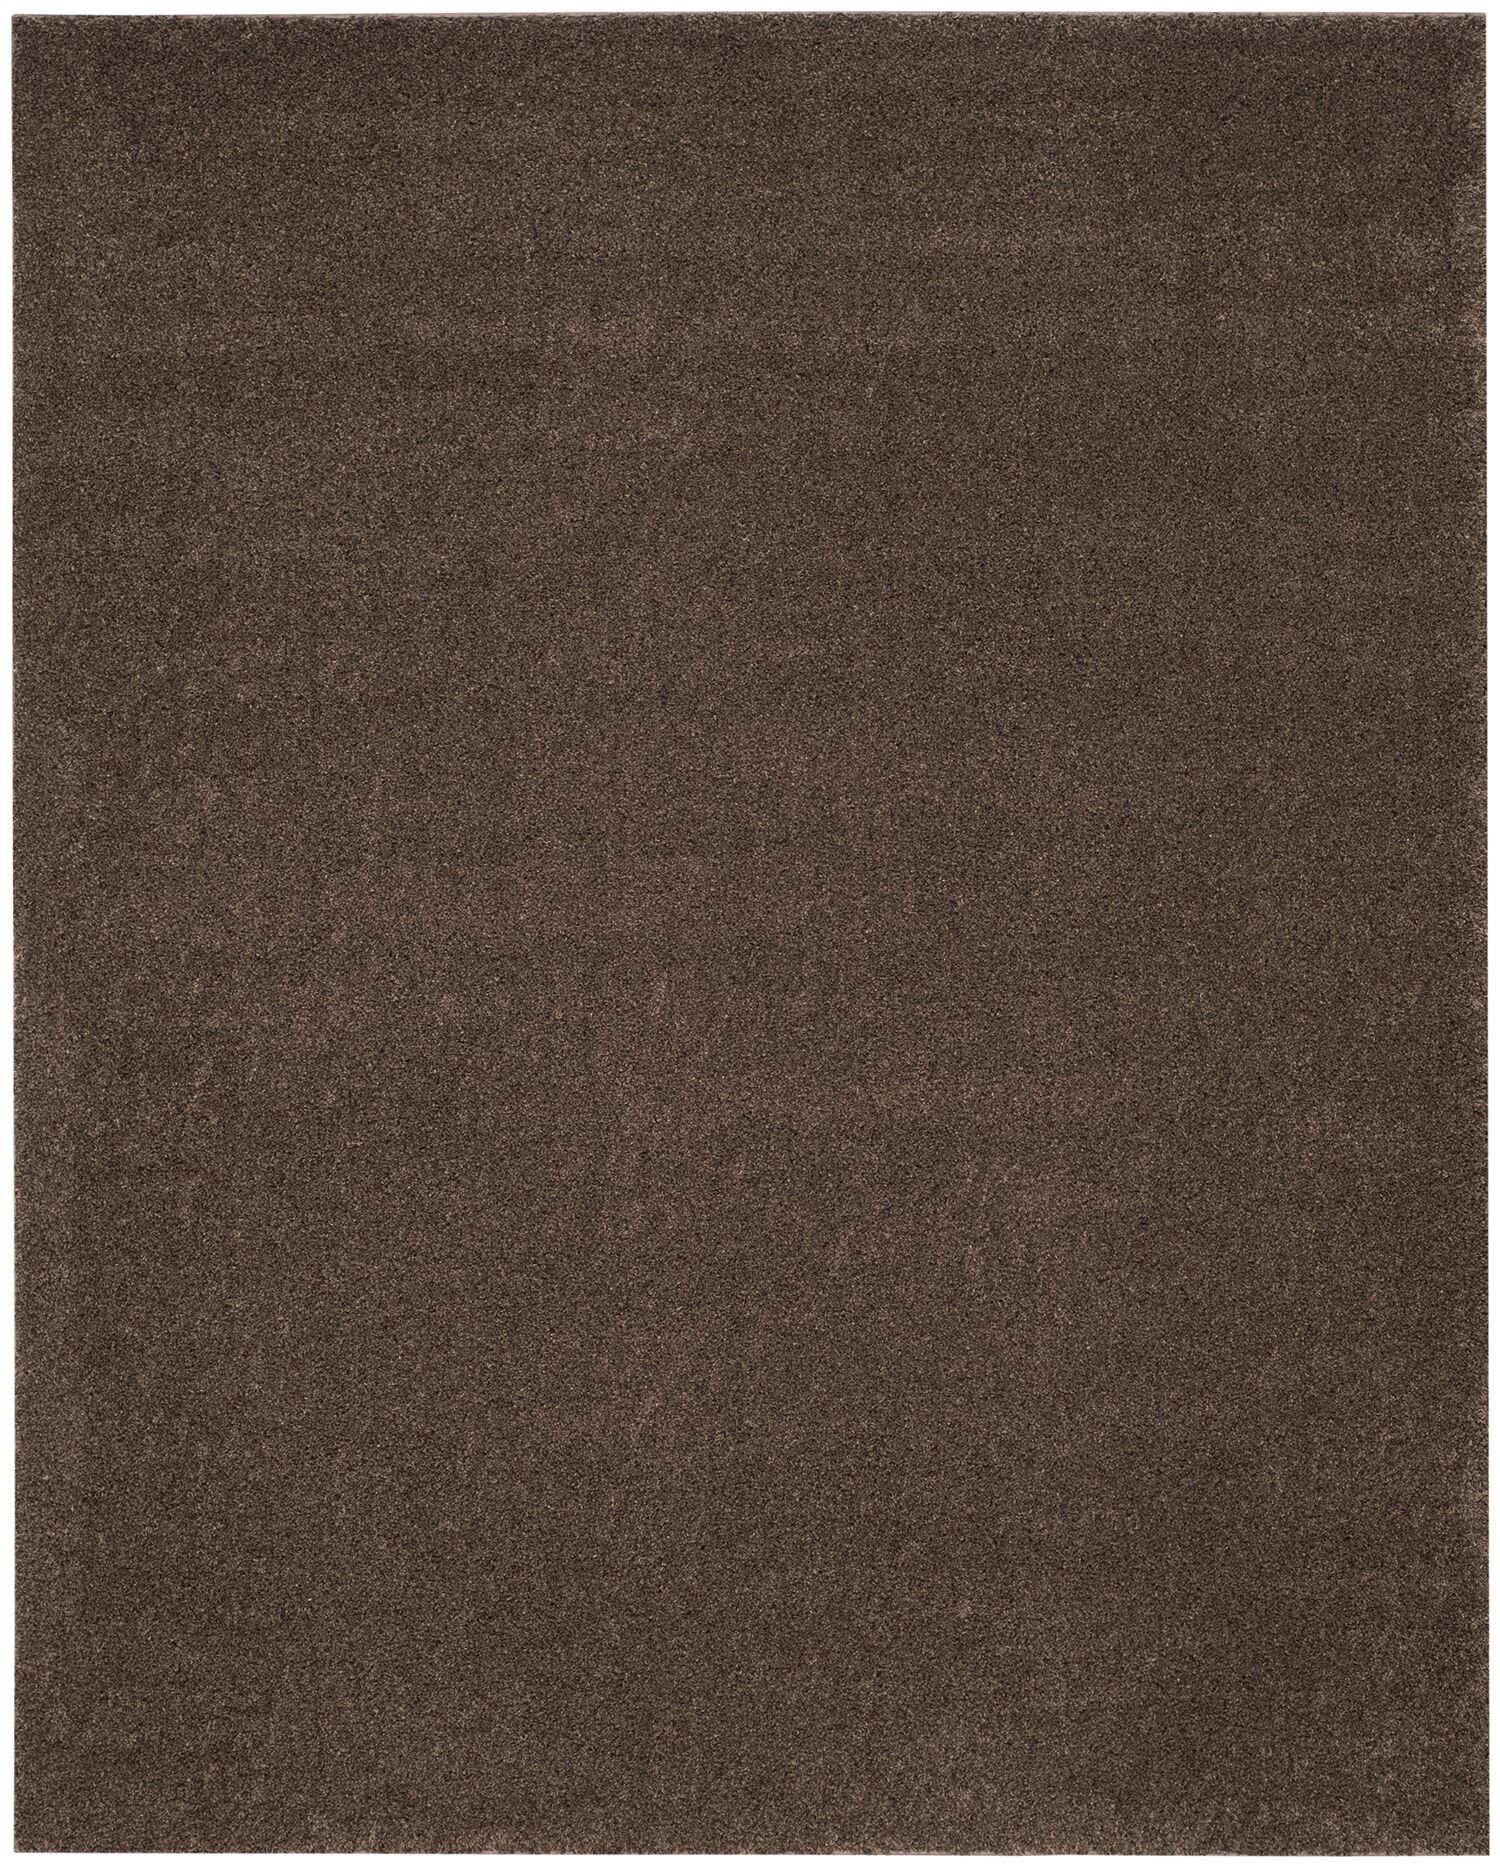 Curran Brown Area Rug Rug Size: Rectangle 4' x 6'